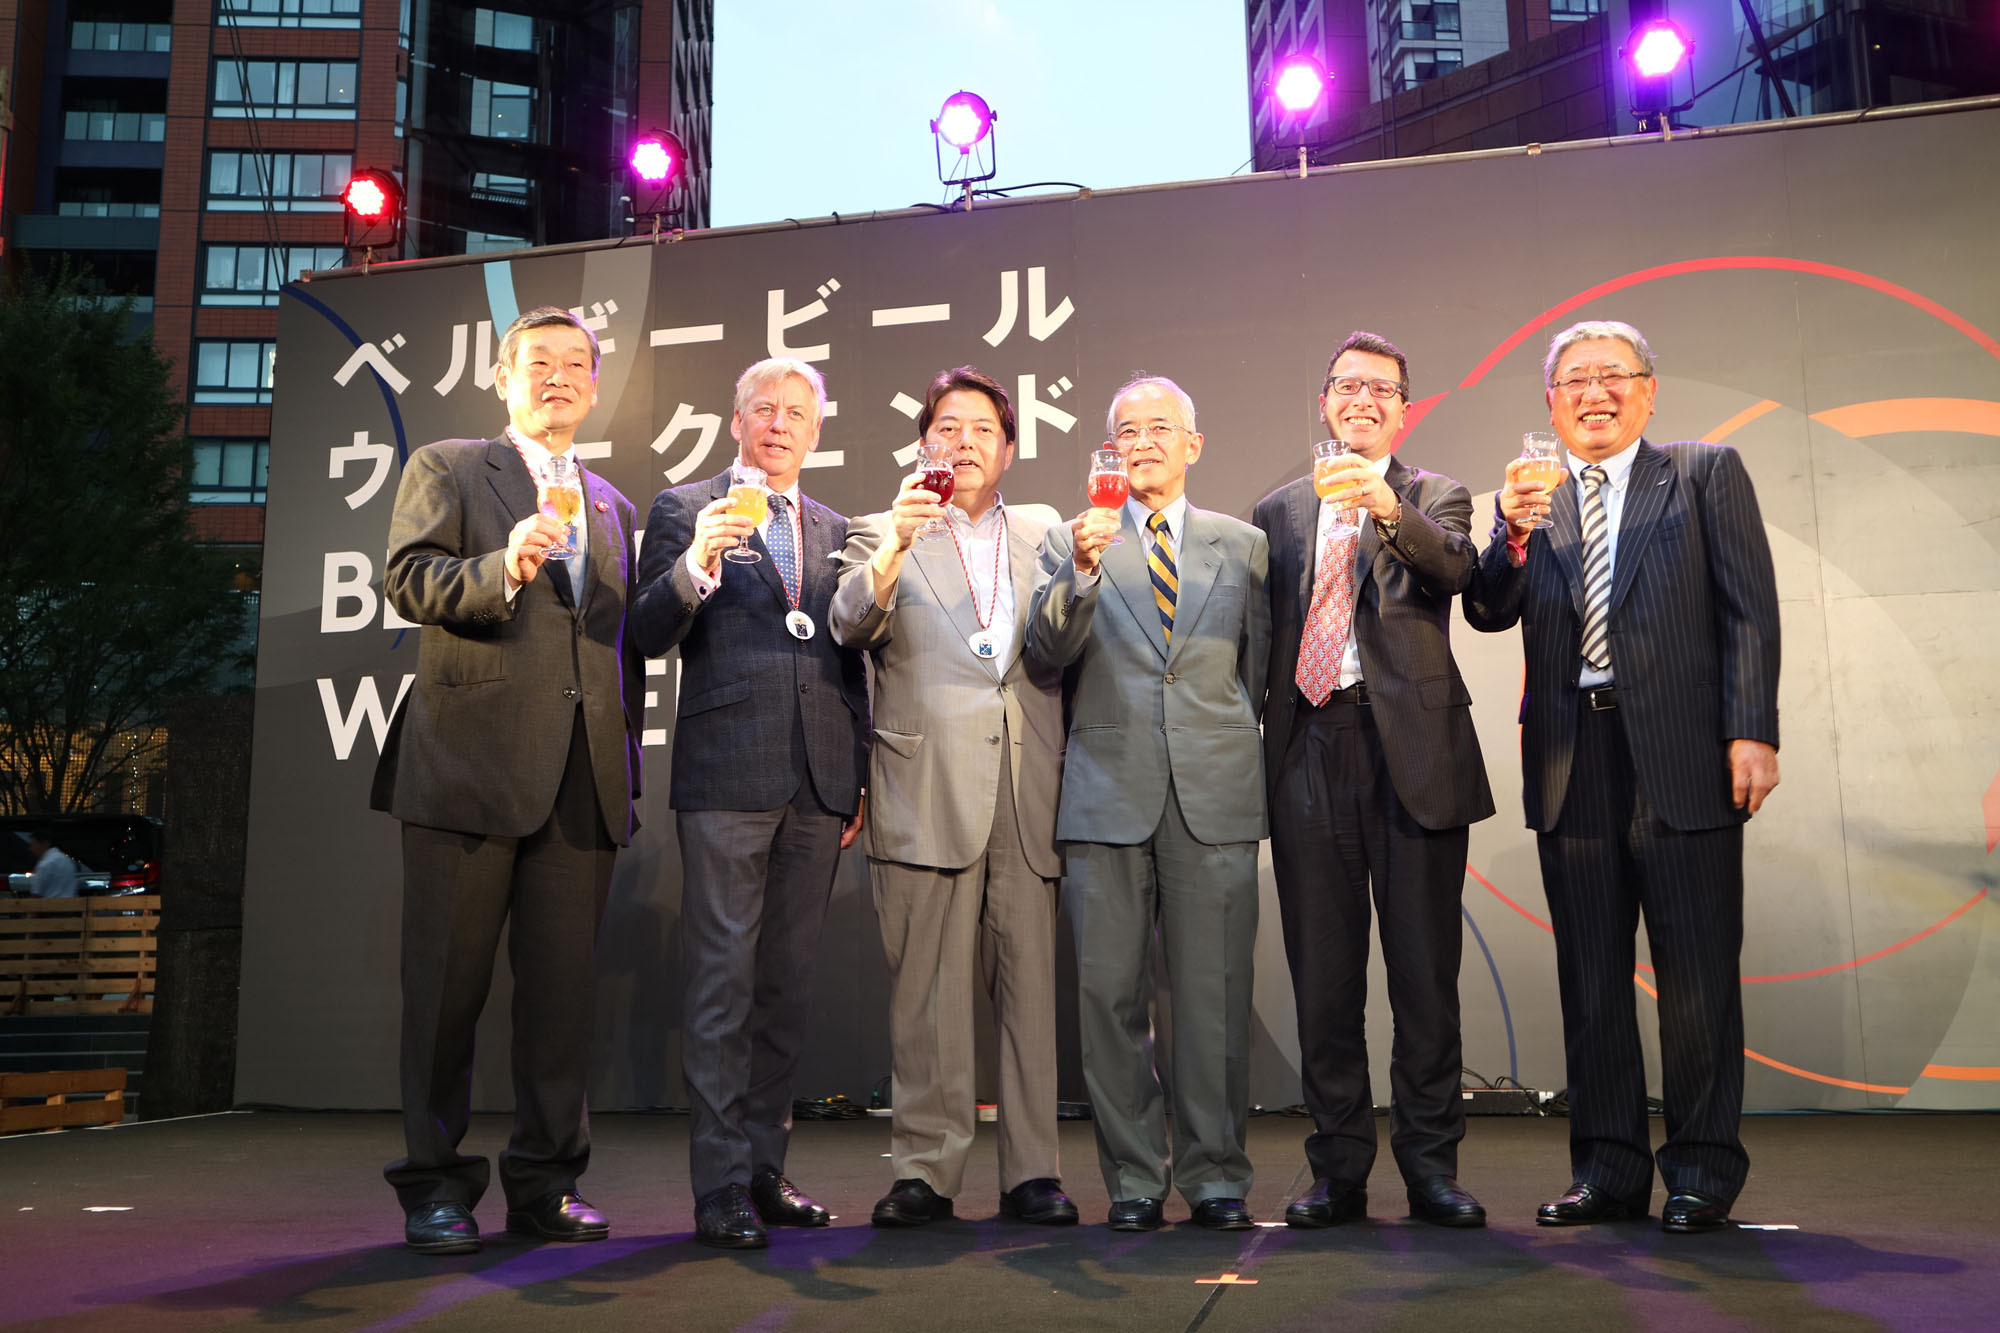 (From left) Shintaro Konishi, chairman of the Belgian Beer Weekend organizing committee; Belgian Ambassador Gunther Sleeuwagen; Yoshimasa Hayashi, minister of education, culture, sports, science and technology; Jun Yokota, vice president of the Japan-Belgium Society; Bernard de le Court, secretary-general of the Belgium-Luxembourg Chamber of Commerce; and Hiromitsu Kuramoto, president of the Belgium-Luxembourg Market Council, attend the opening ceremony of Belgian Beer Weekend 2017 at Roppongi Hills in Tokyo on Sept. 14. |  HIROYUKI TOMIE